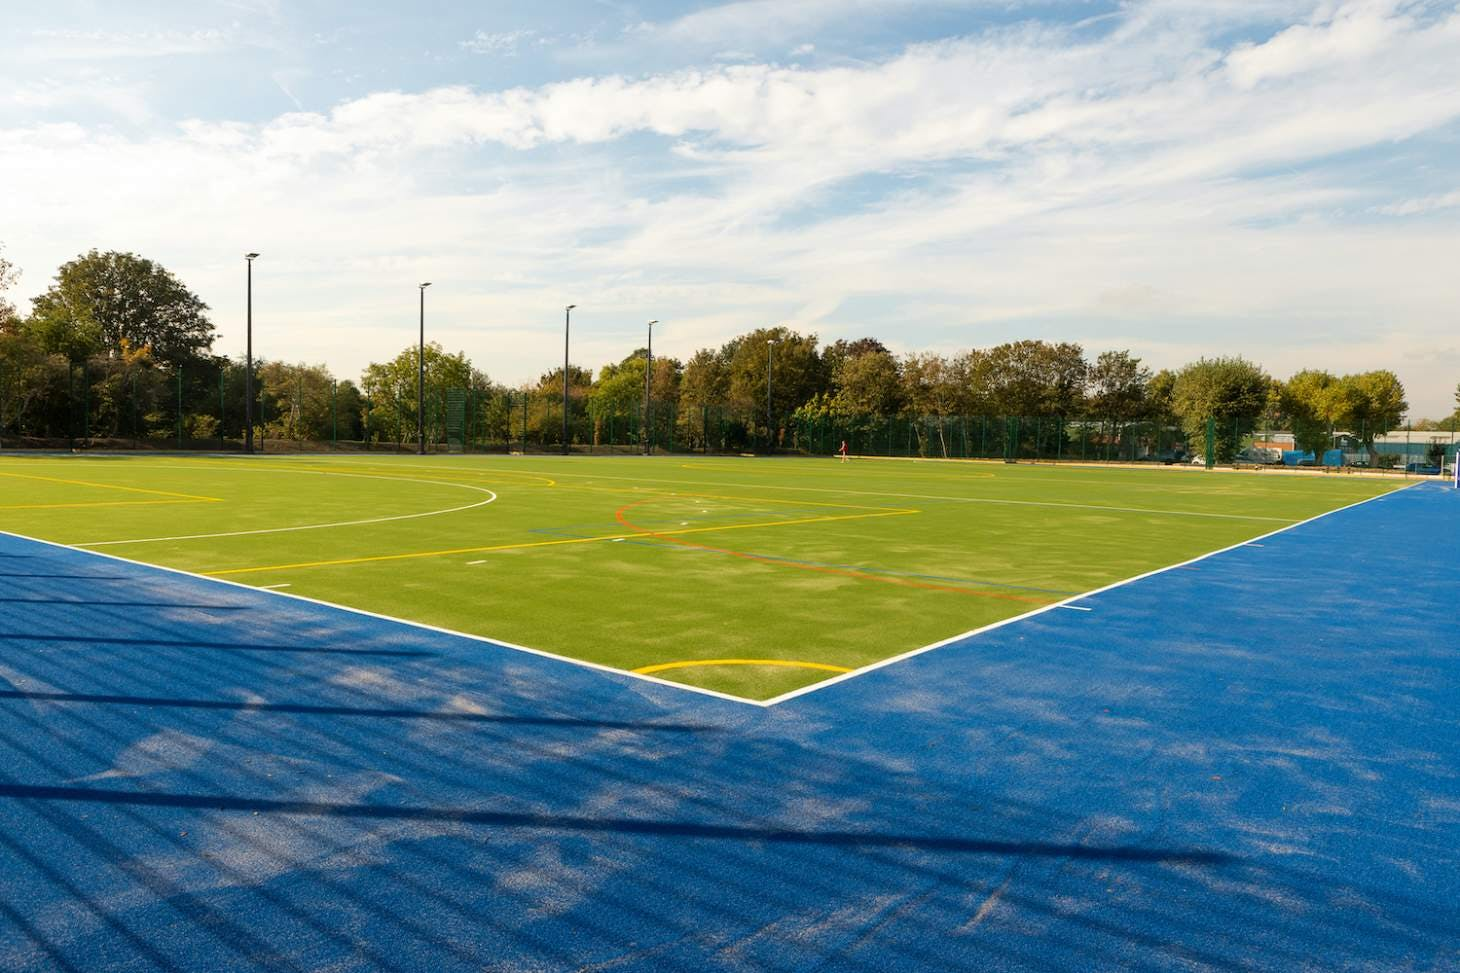 Feel Good Too (formerly Ive Farm Fields) 6-a-side pitch   Sand-based Astroturf hockey pitch